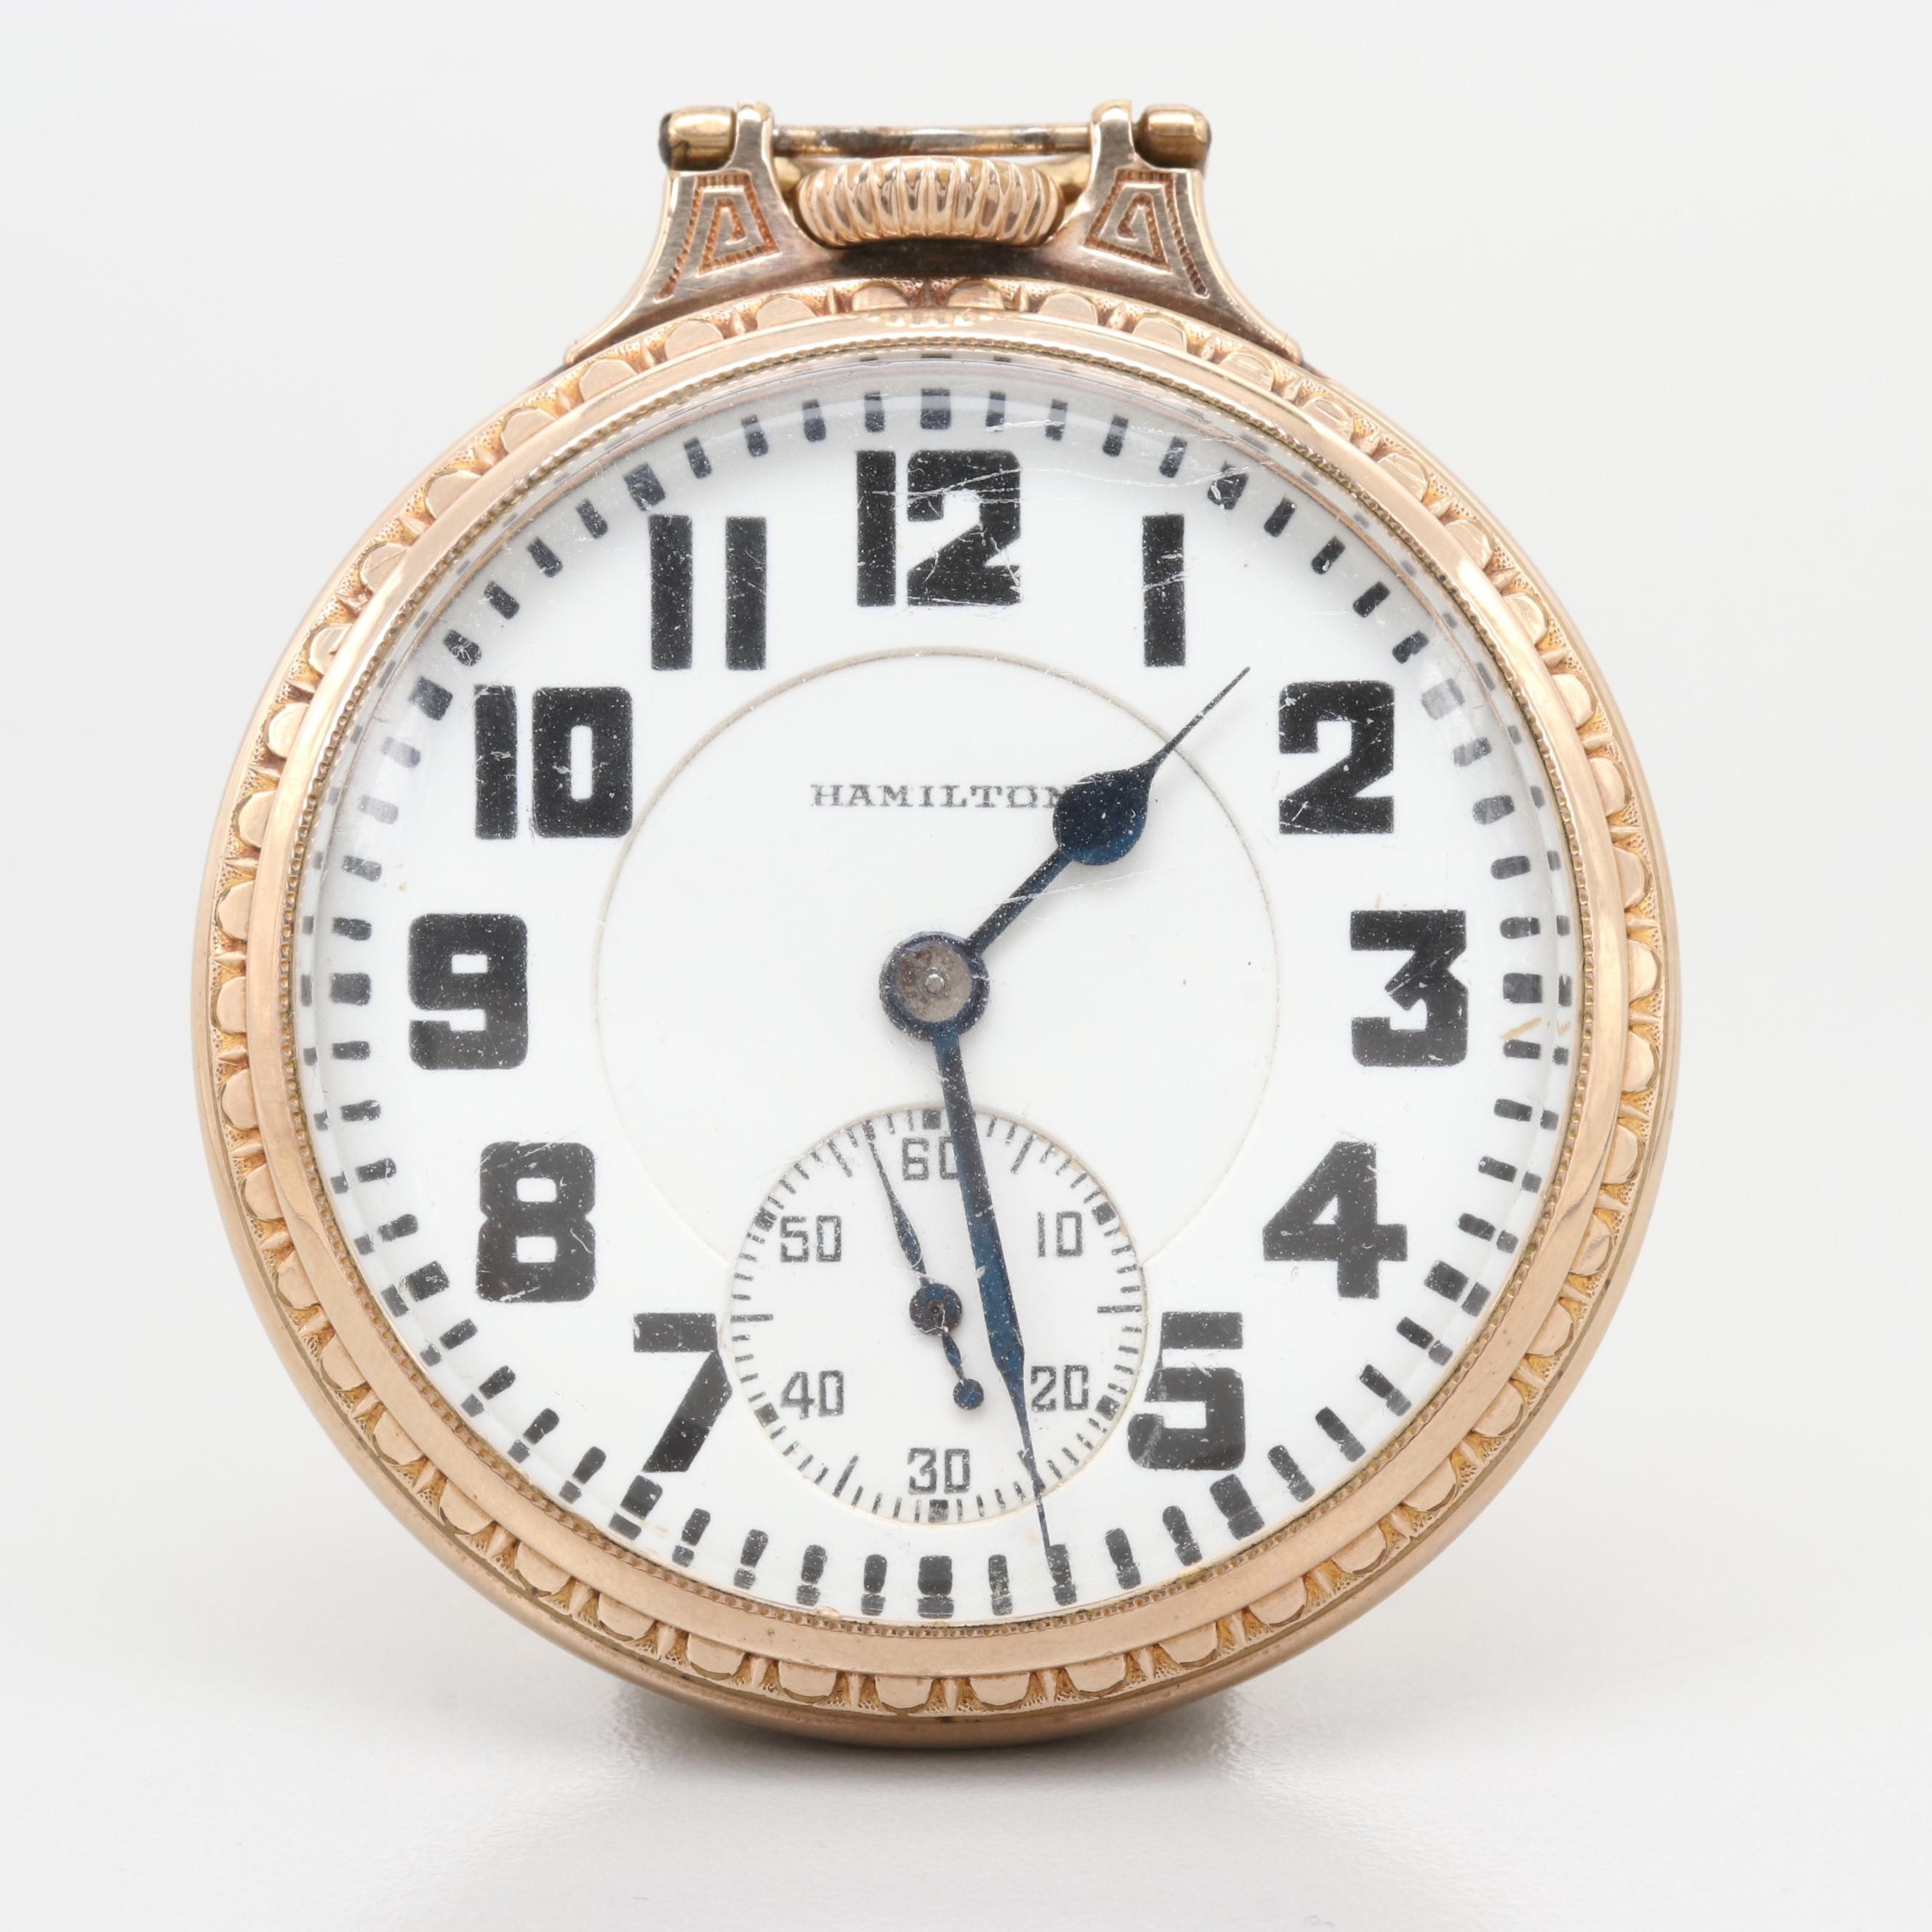 Hamilton Railroad Grade Vintage Gold Filled Pocket Watch, 1926